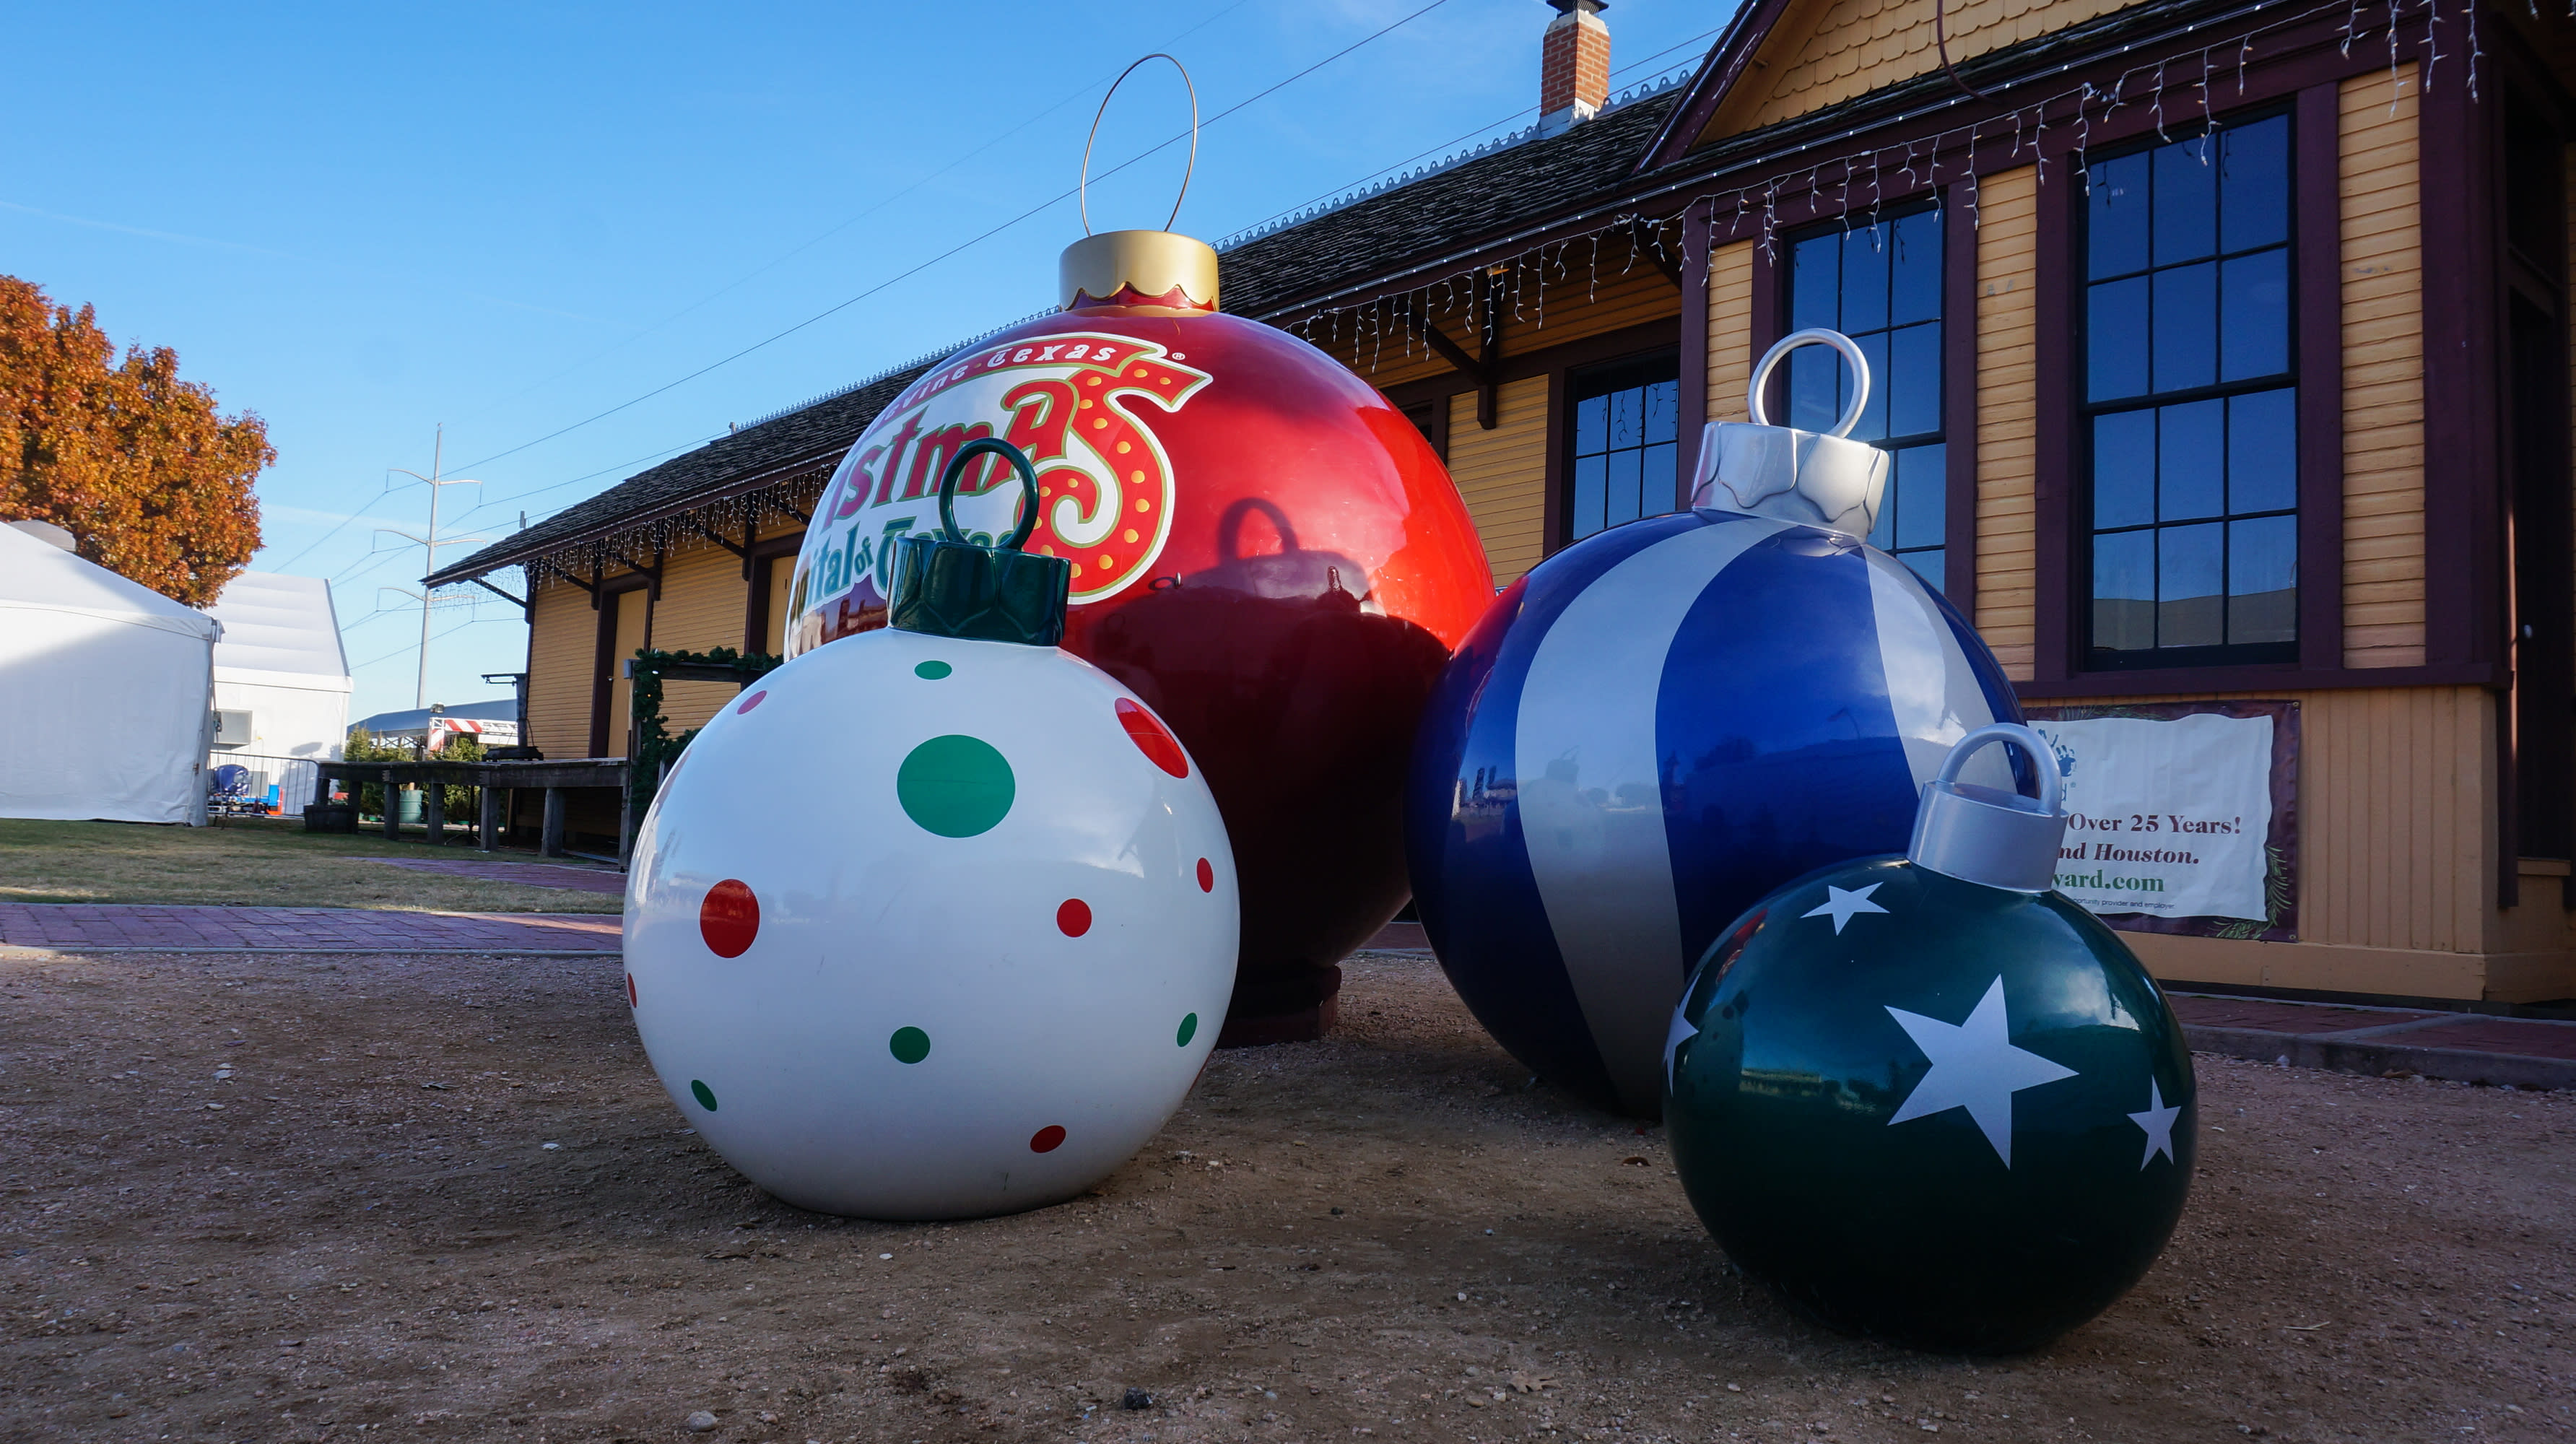 Gather Around the Giant Ornaments outside the Grapevine Vintage Railroad